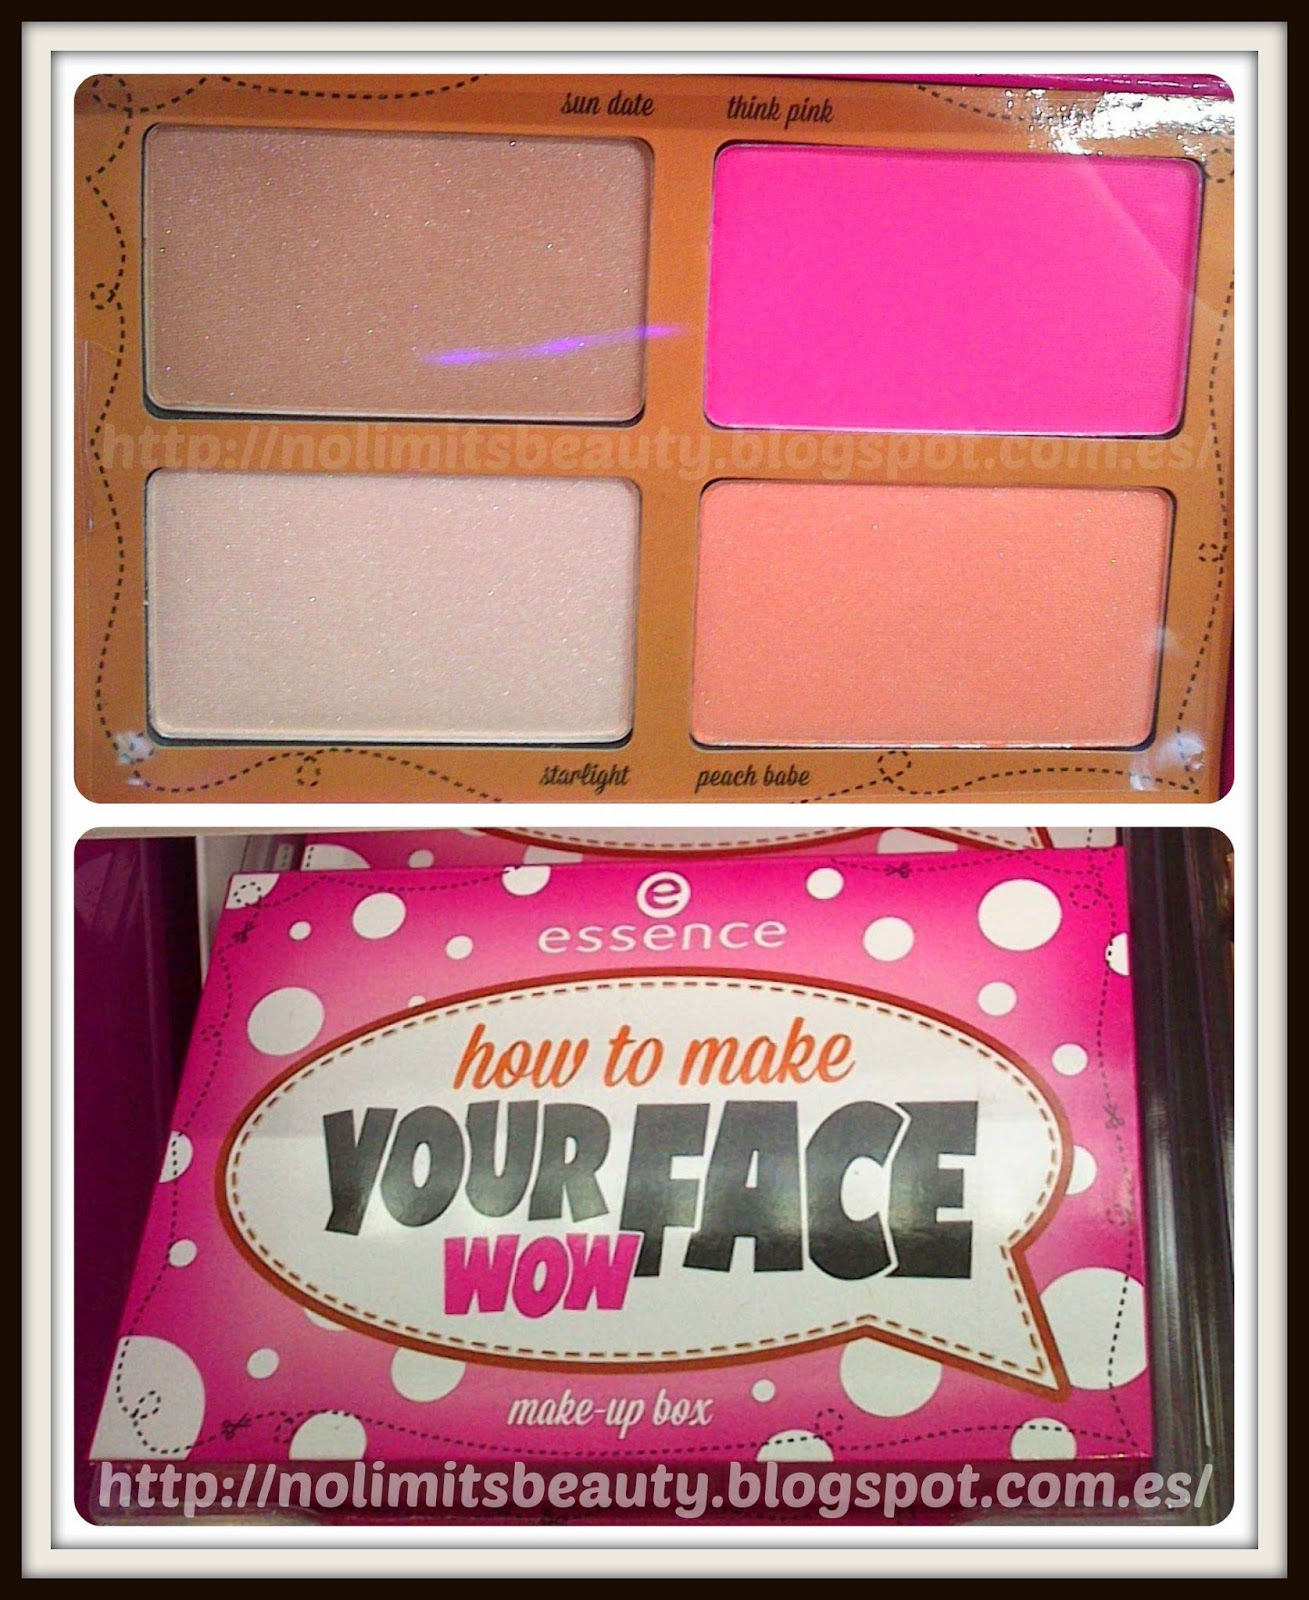 Novedades Essence - Make Up Boxes: How to make your Face Wow